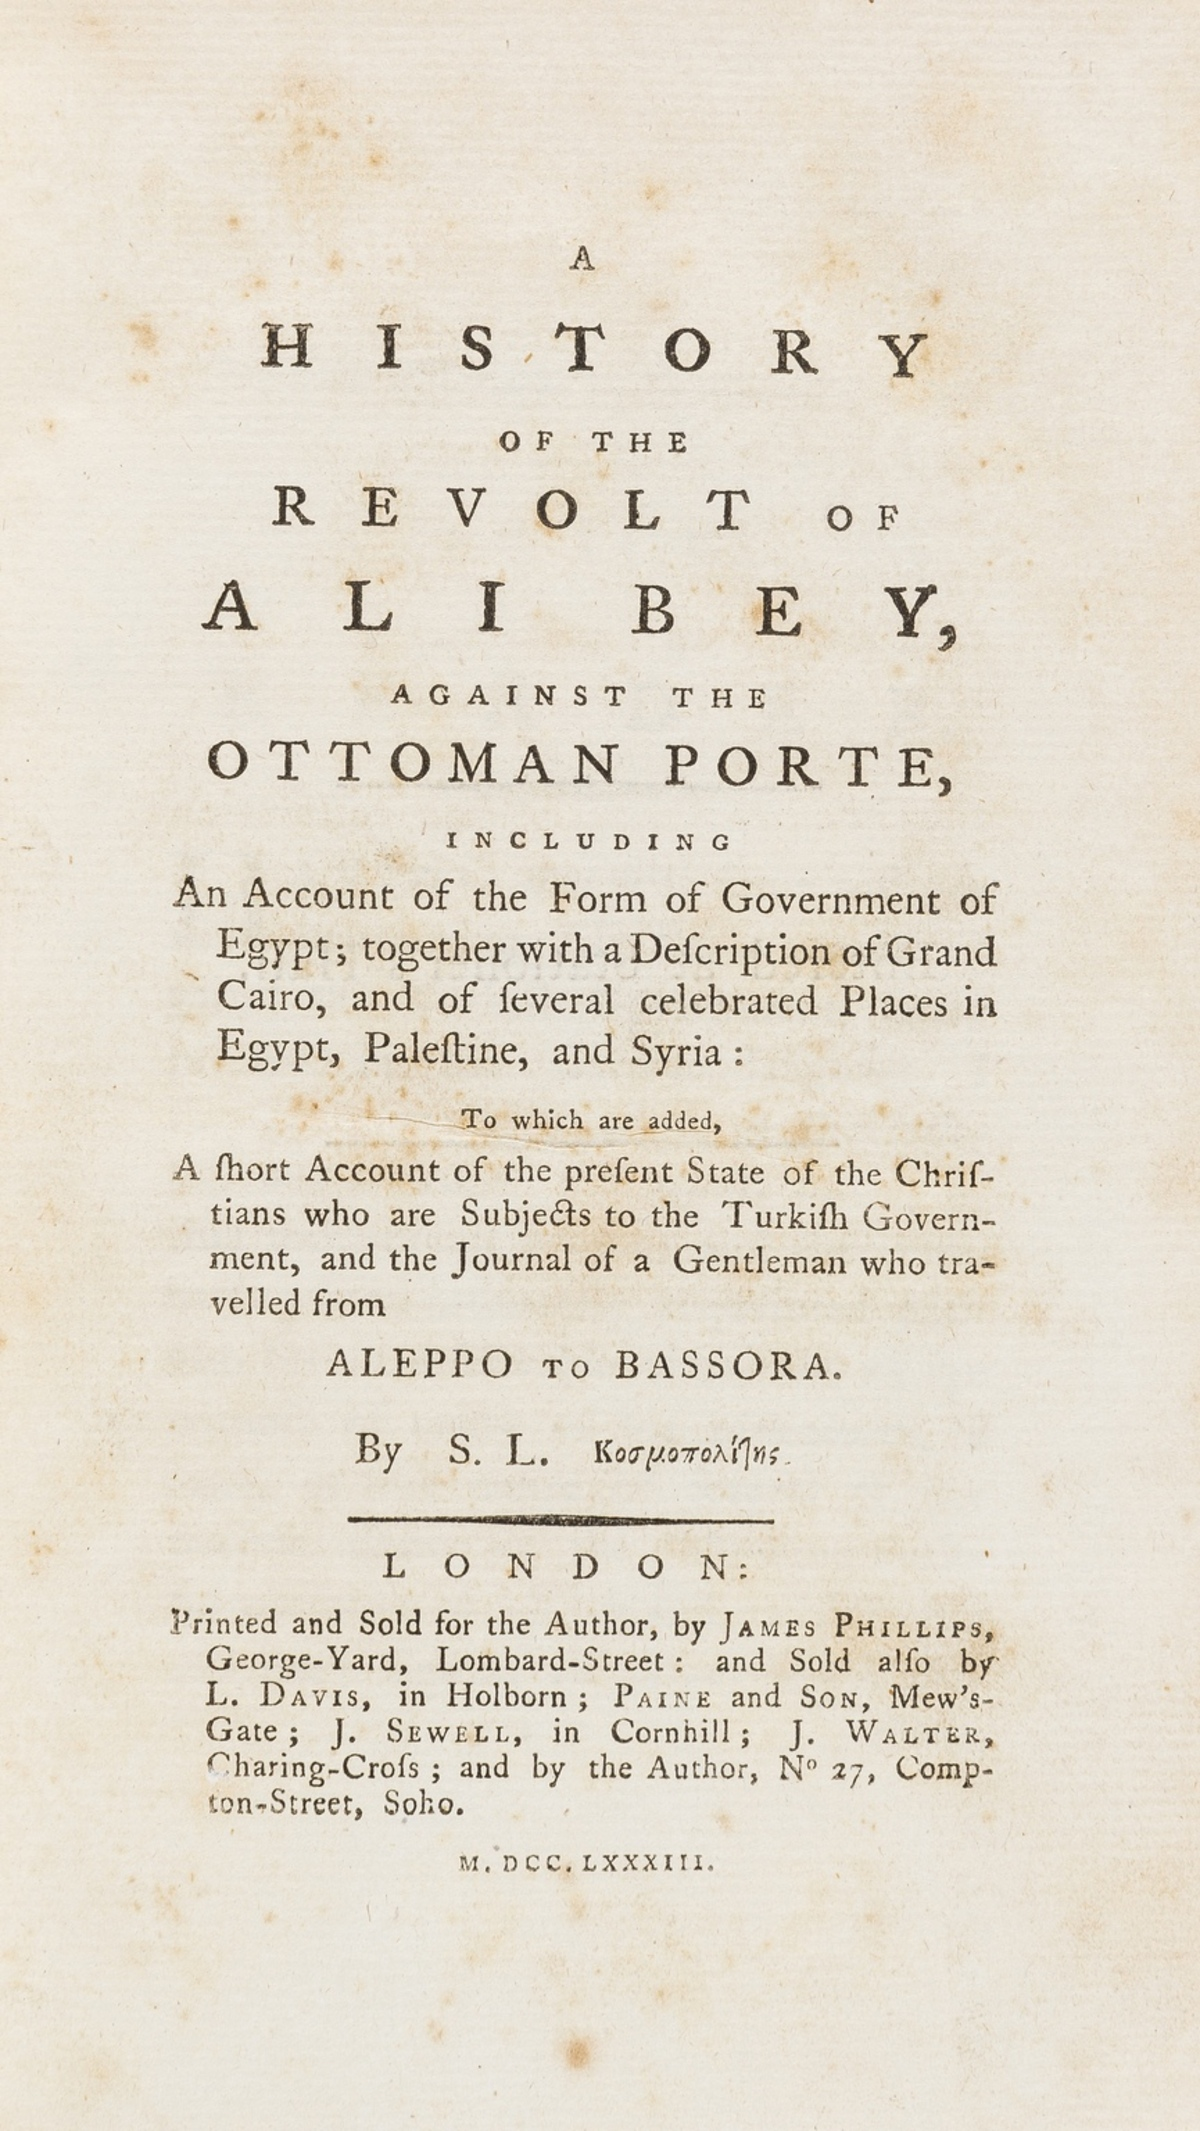 Egypt.- [Lusignan (Sauveur)] A History of the Revolt of Ali Bey, against the Ottoman Porte, first …